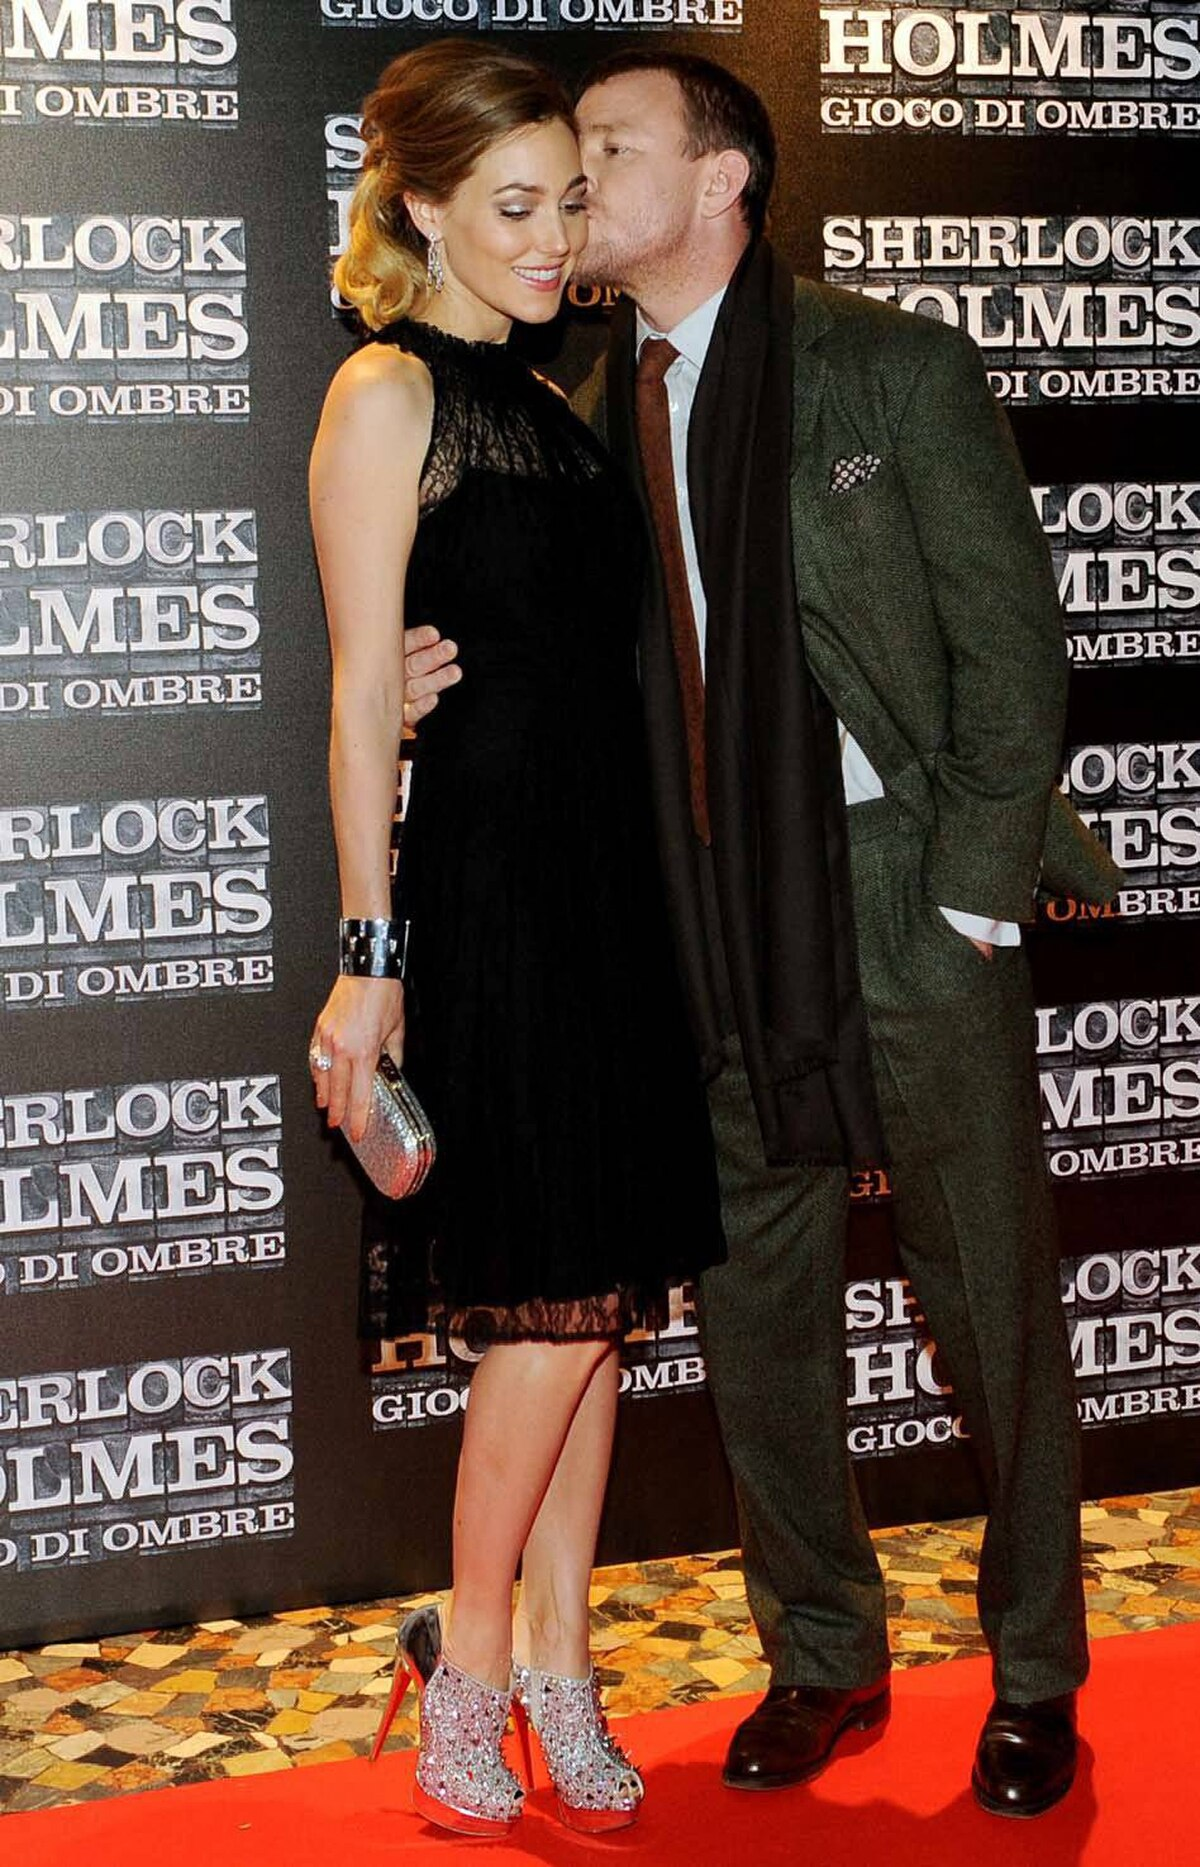 """Guy Ritchie kisses his younger, softer partner Jacqui Ainsley at the premiere of """"Sherlock Holmes 2: A Game of Shadows"""" in Rome on Sunday."""